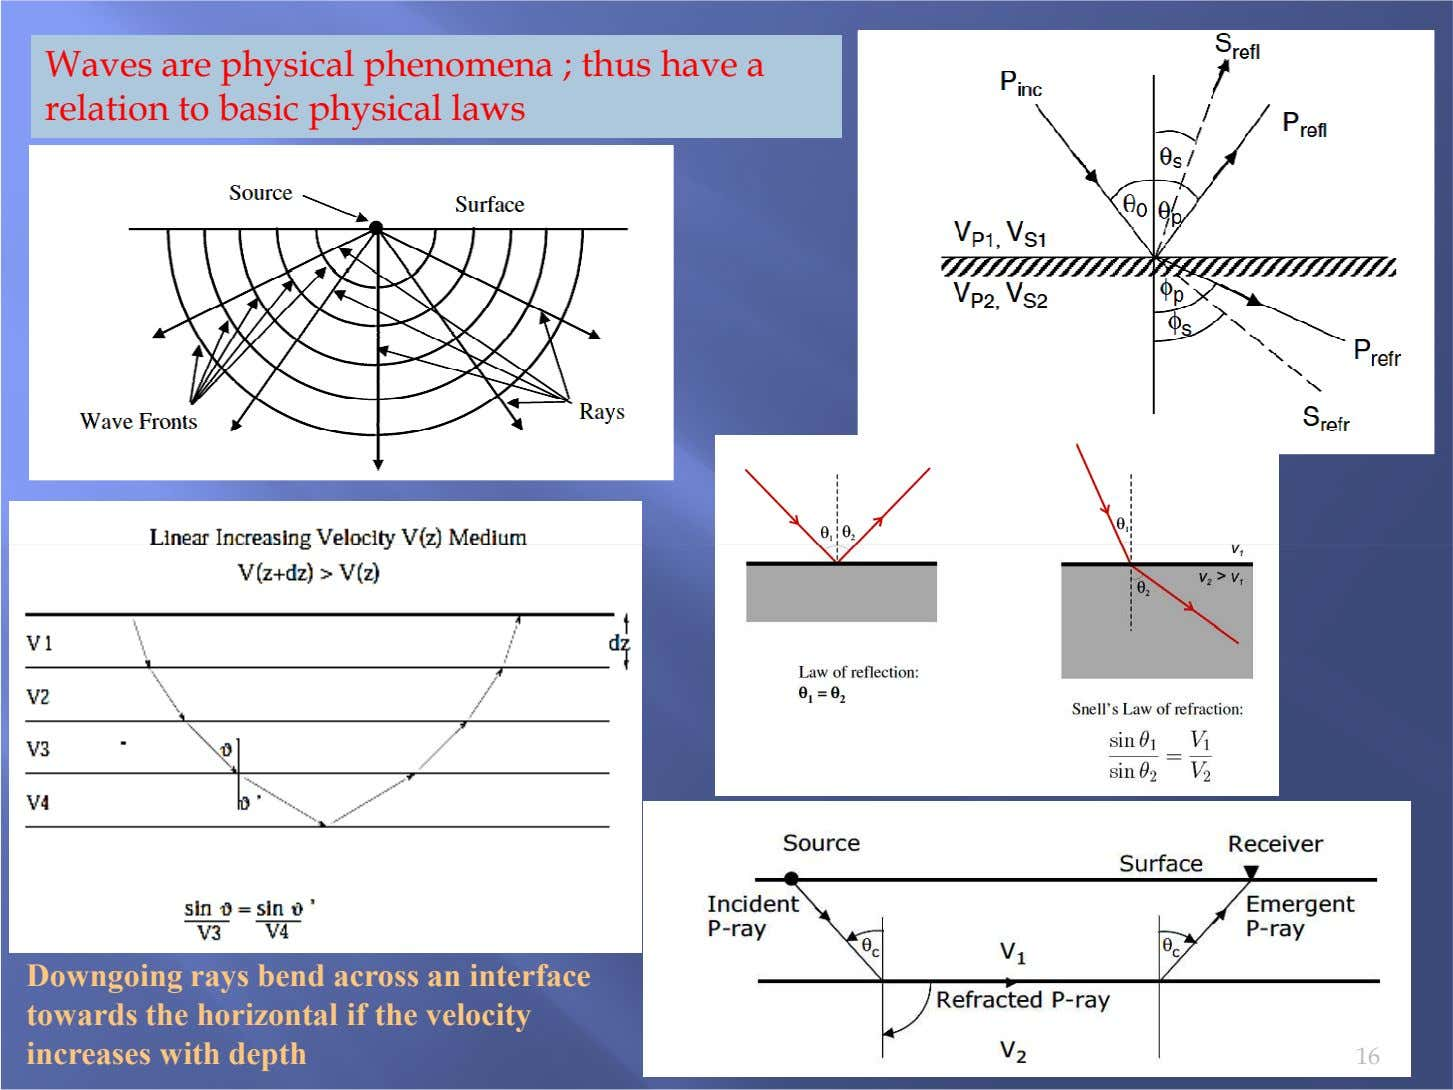 Waves are physical phenomena ; thus have a relation to basic physical laws Downgoing rays